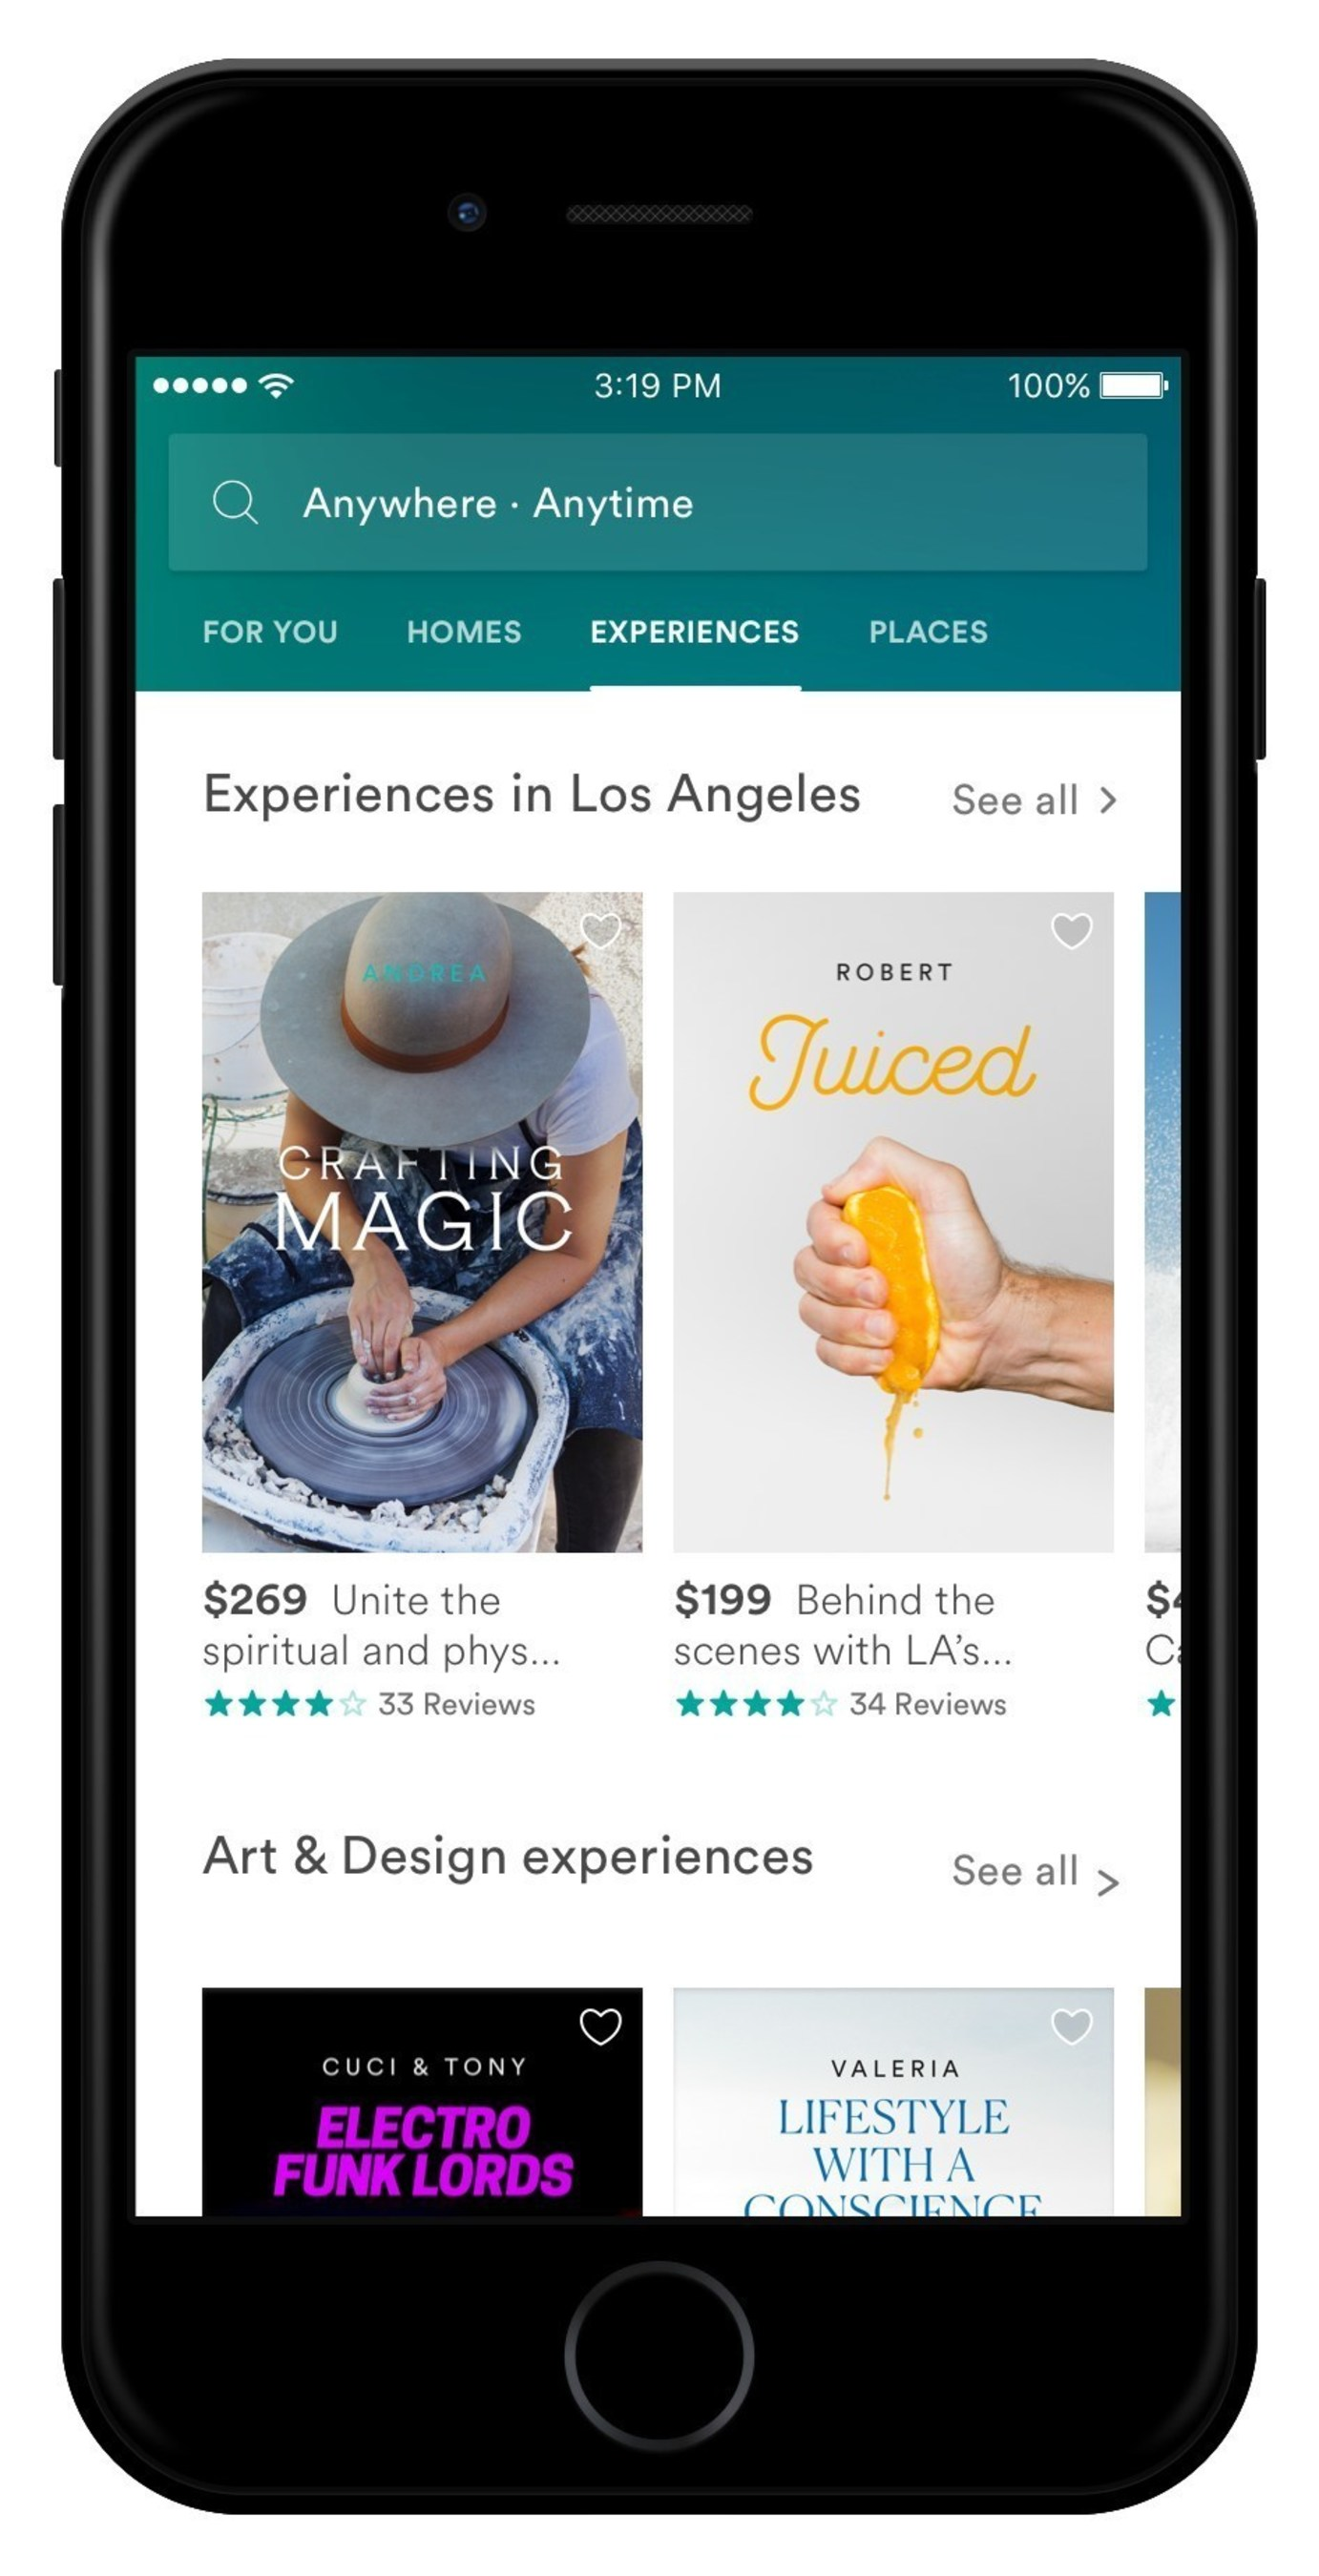 With Trips, Airbnb aims to make it easy with one app to book most of your travel needs.